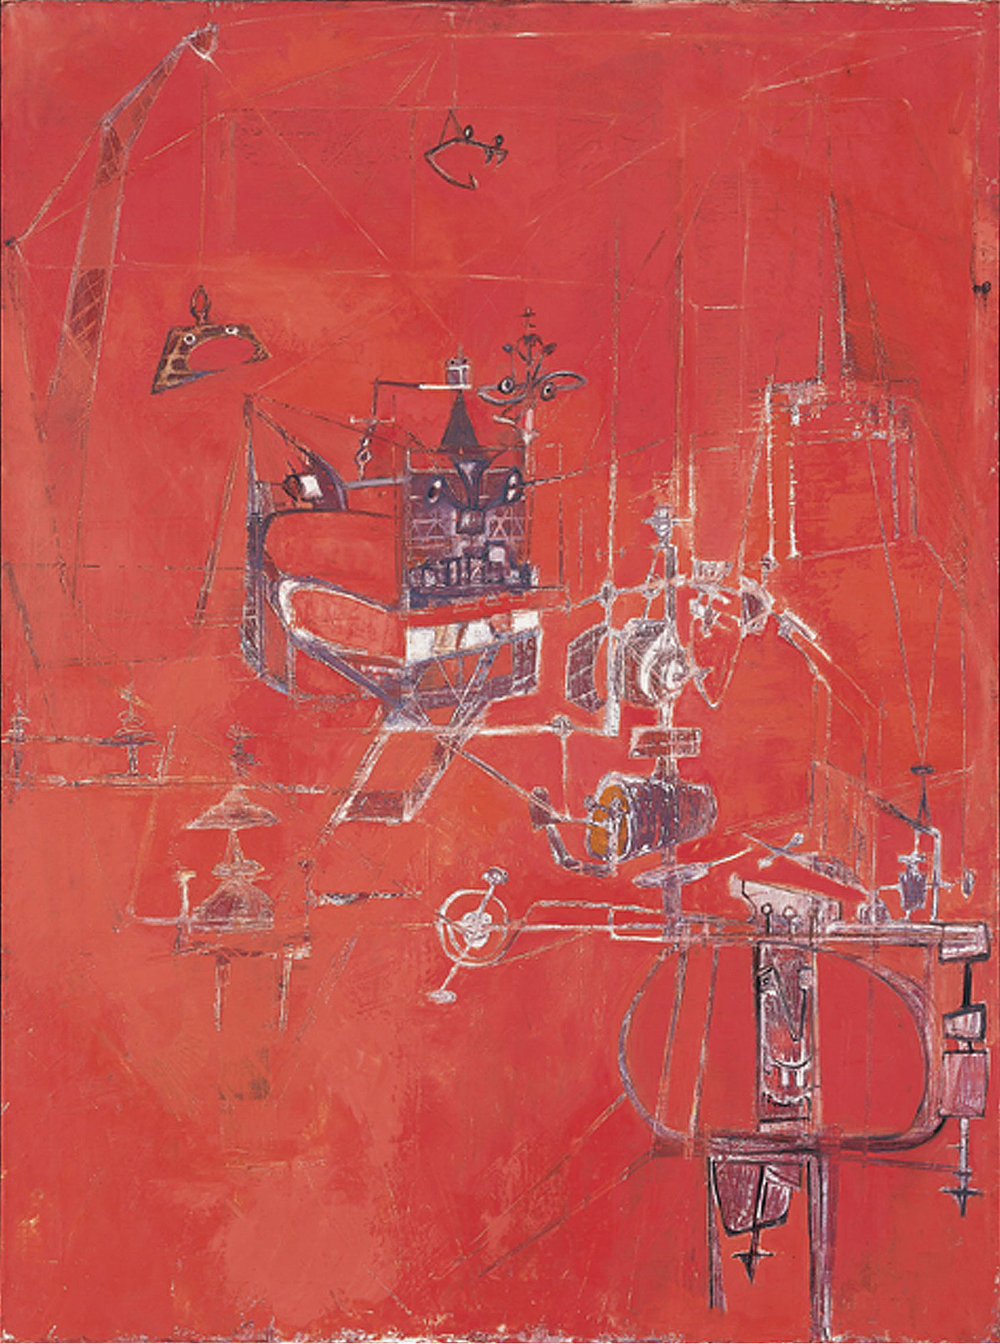 Hedda Sterne, Machine 5, 1950, Oil on canvas, 51 x 38 1/8 in., Collection of Krannert Art Museum and Kinkead Pavilion, University of Illinois at Urbana-Champaign, Festival of Arts Purchase Fund, 1950-7-1